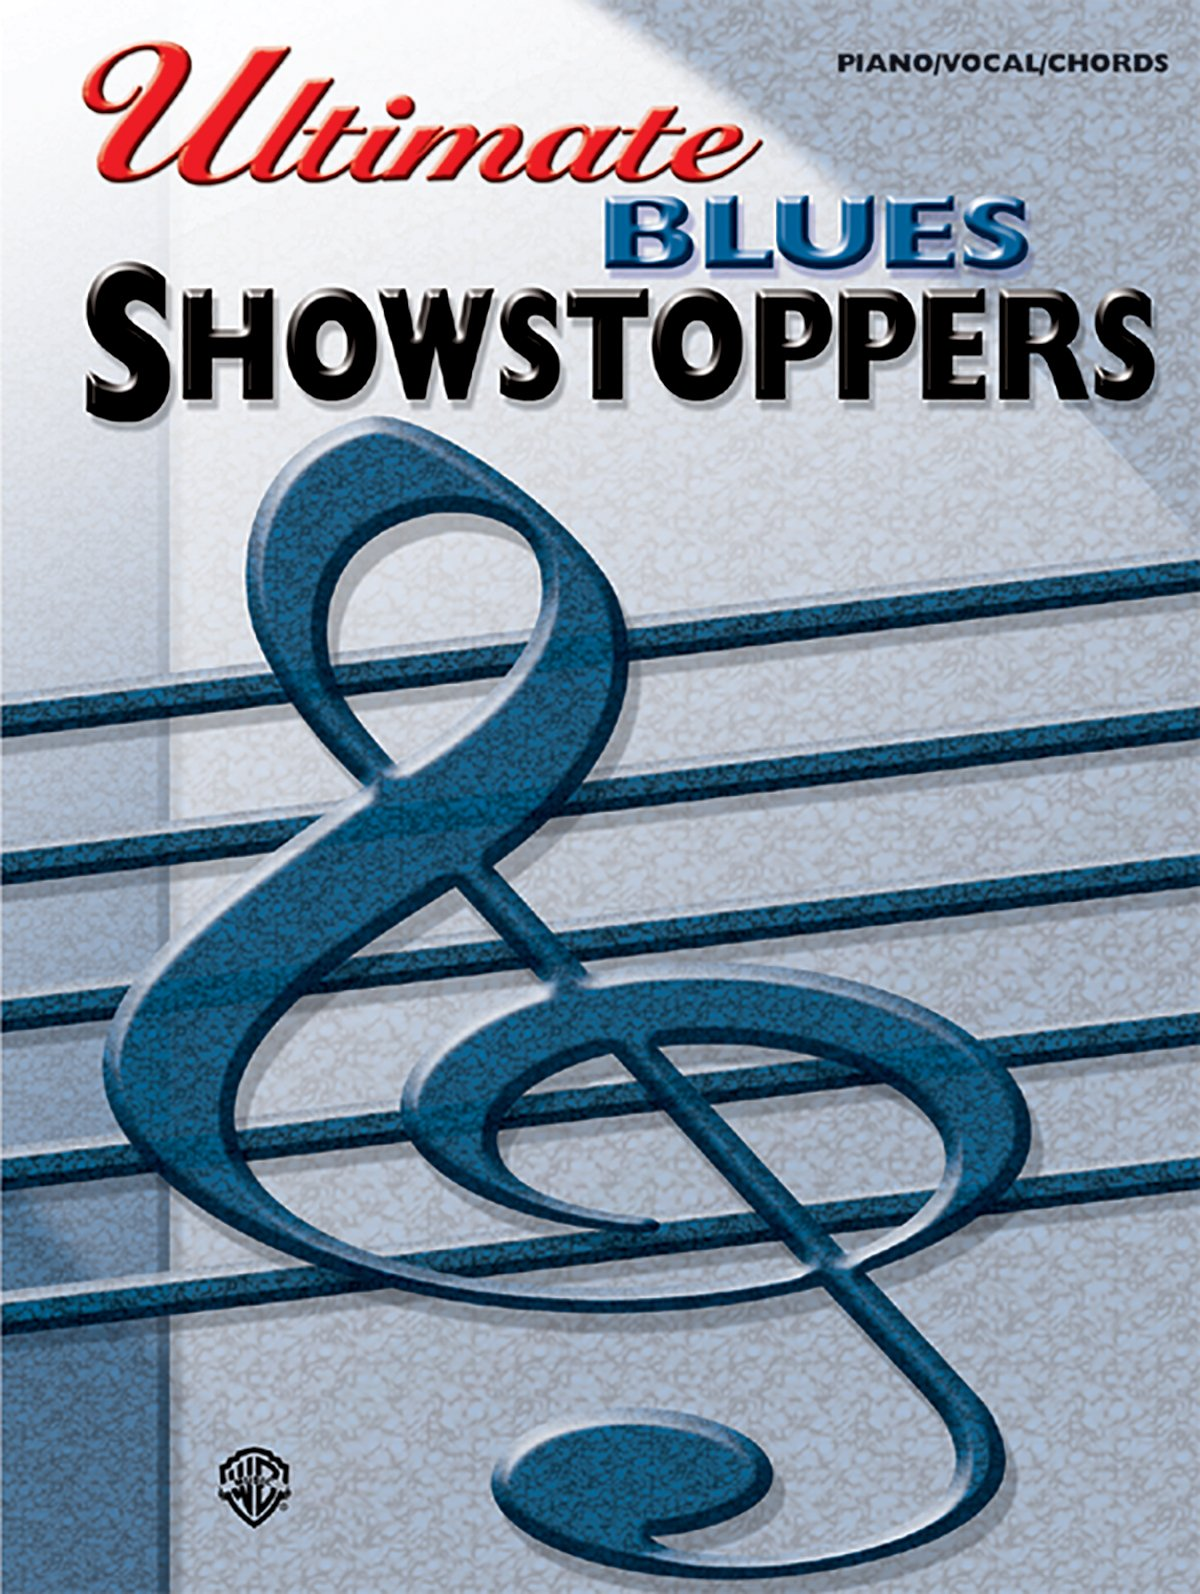 Download Ultimate Showstoppers Blues: Piano/Vocal/Chords pdf